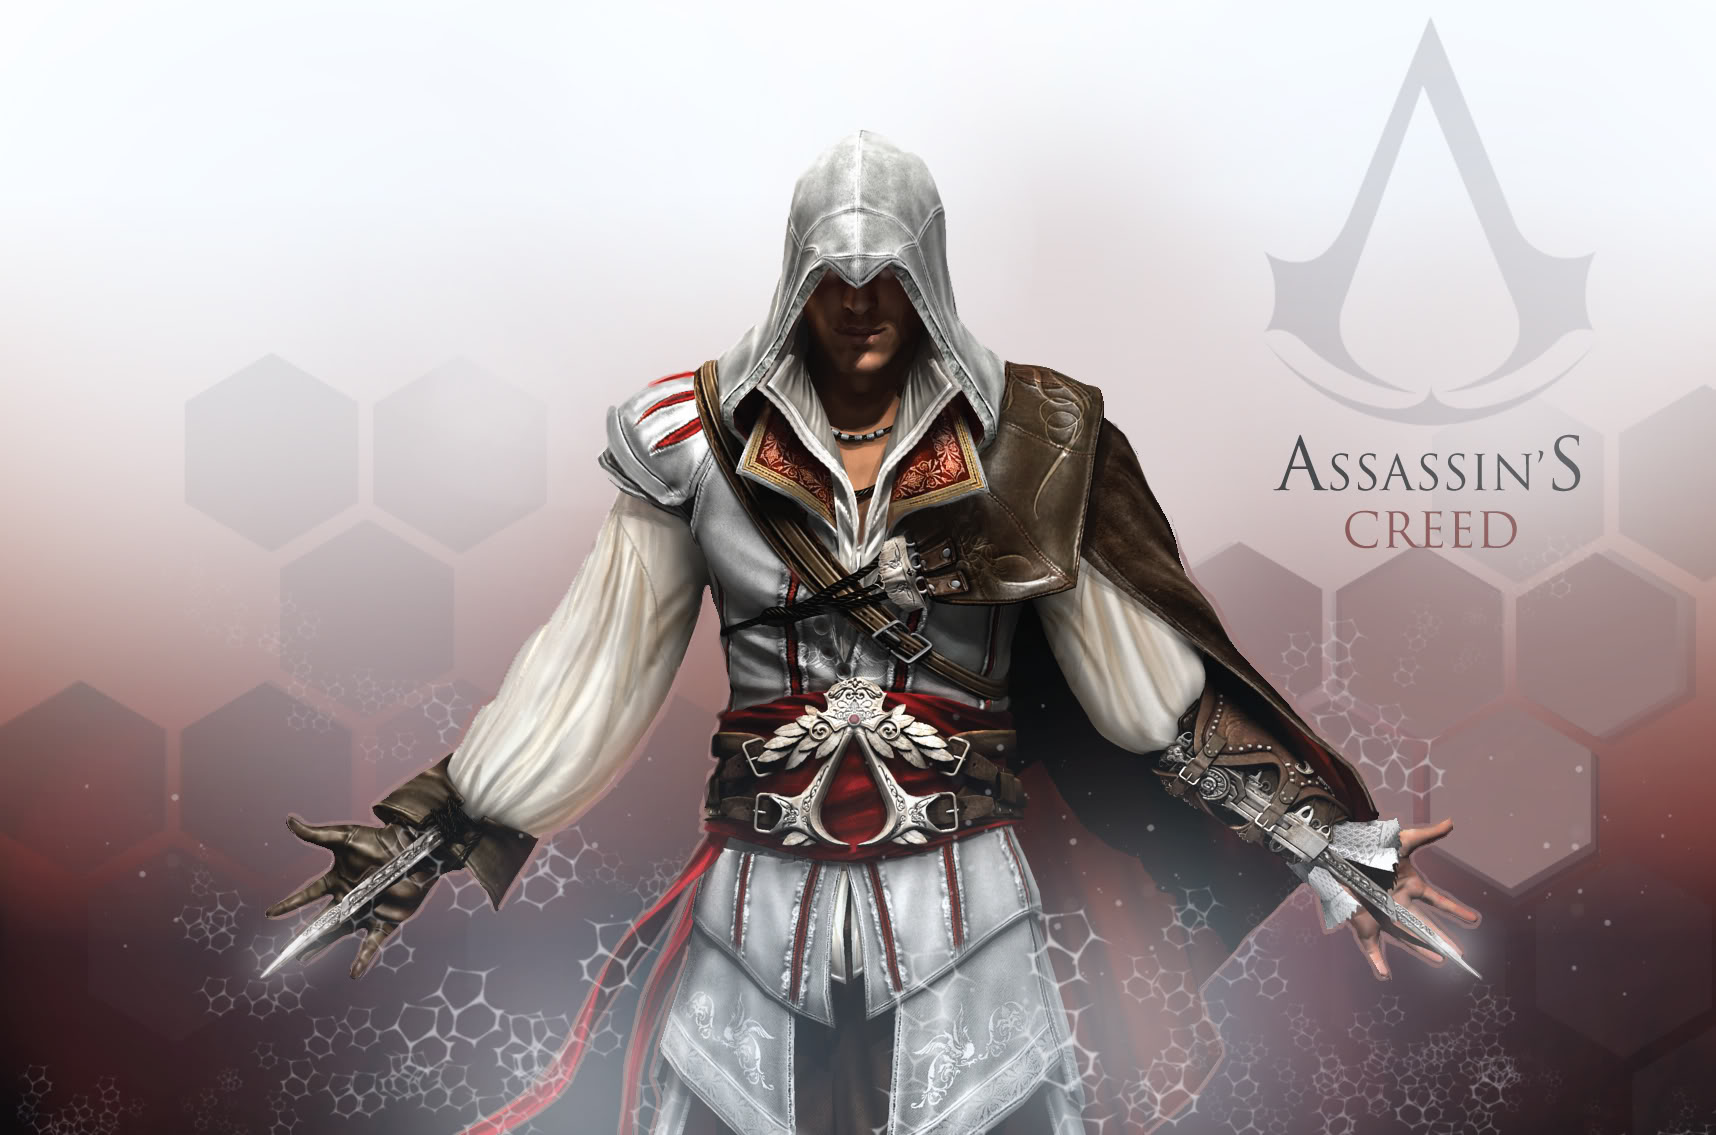 Assassins Creed 2 5630 Hd Wallpapers in Games   Imagescicom 1716x1135